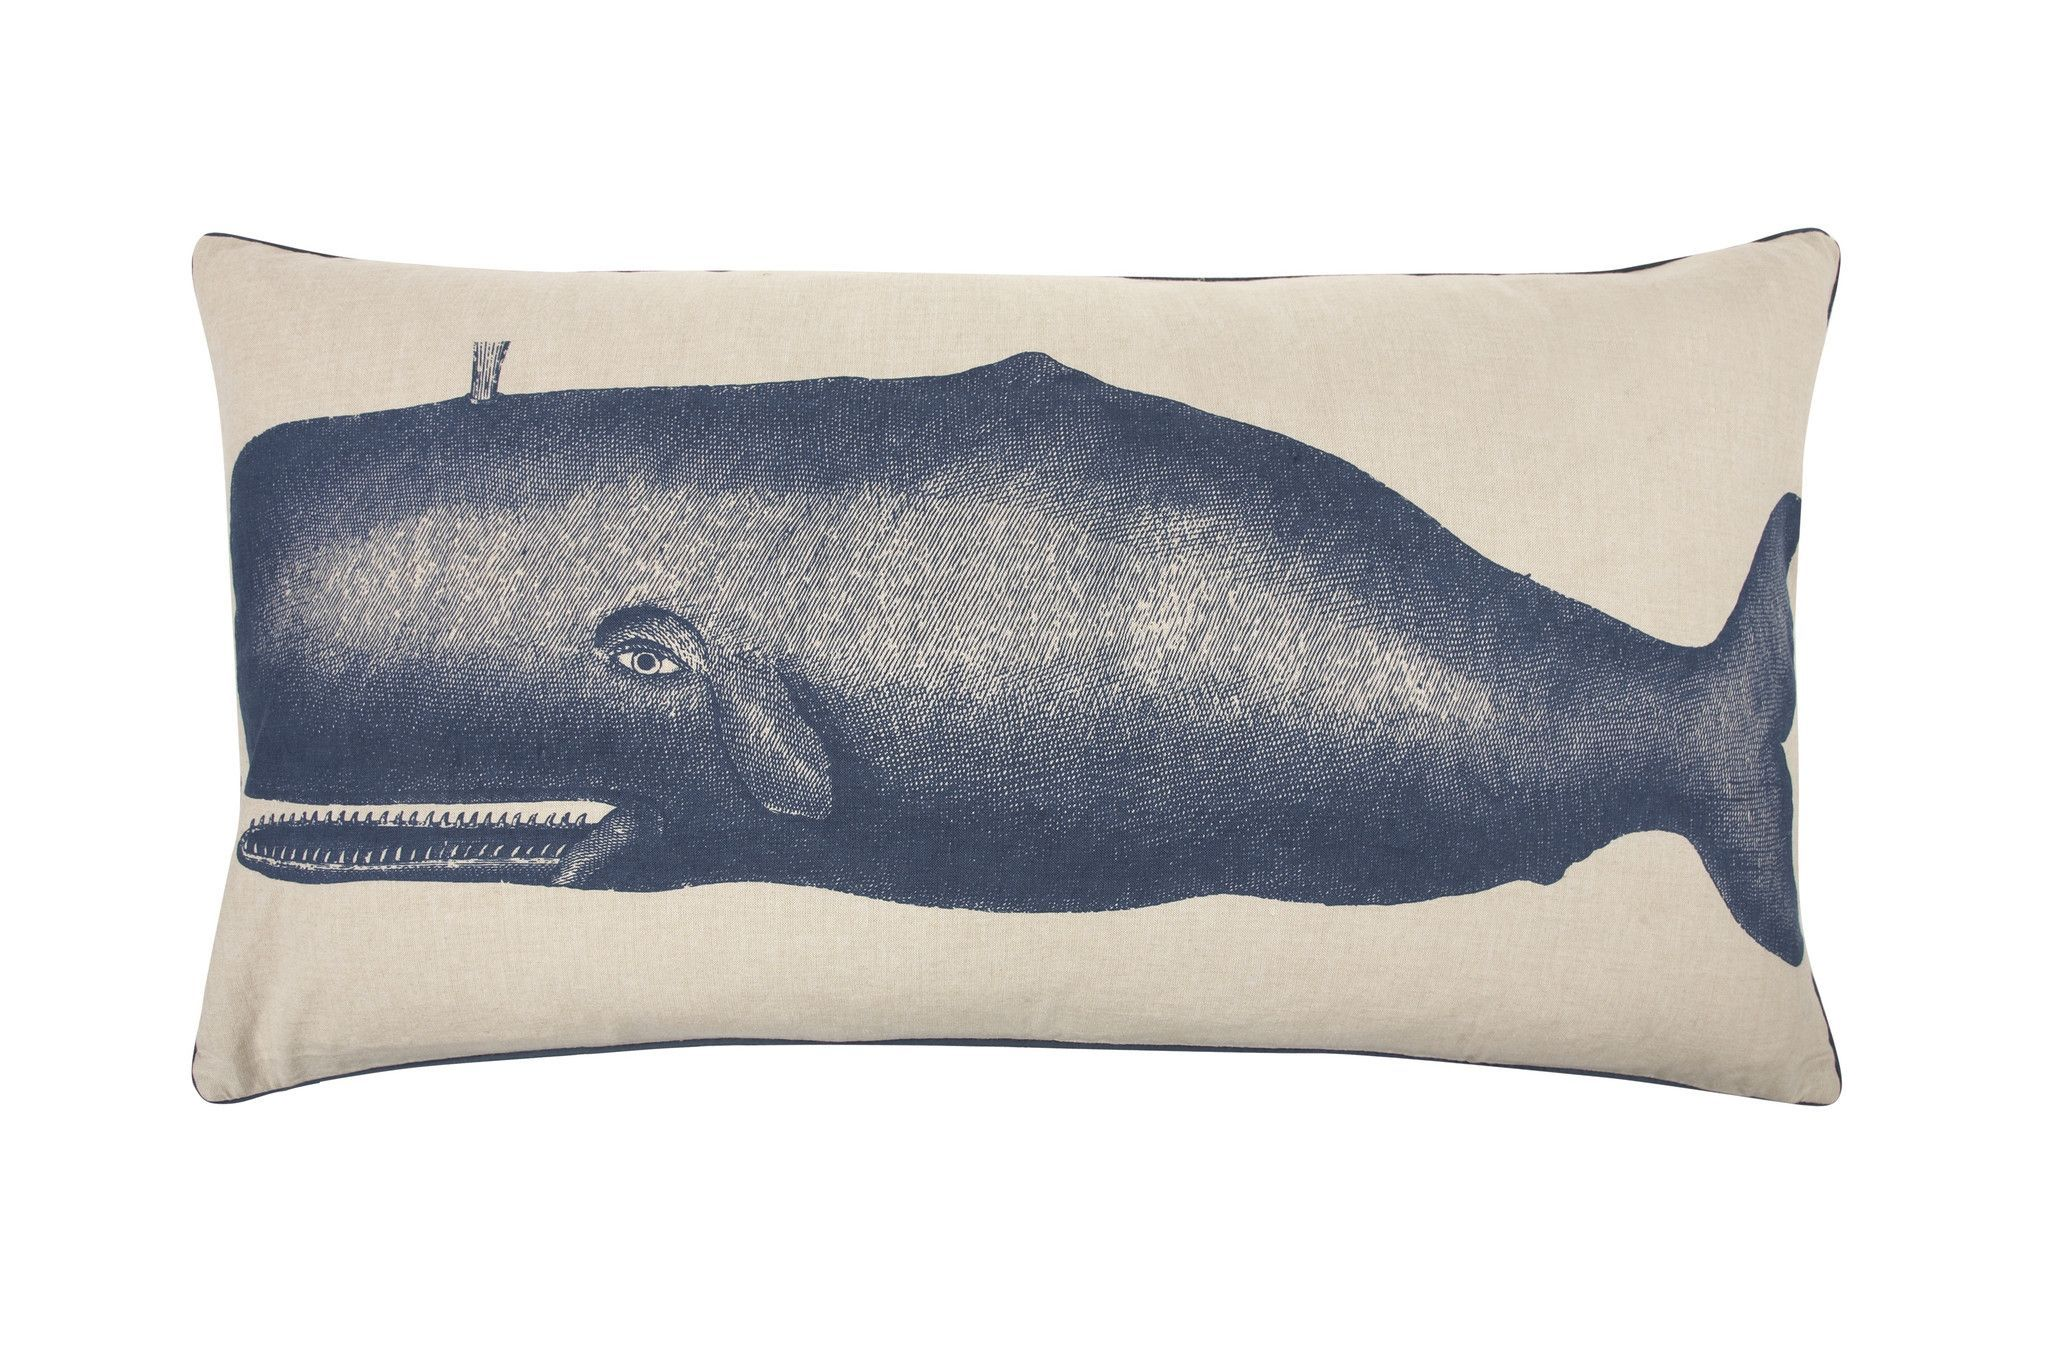 Moby Accent Bed Pillow in Ink design by